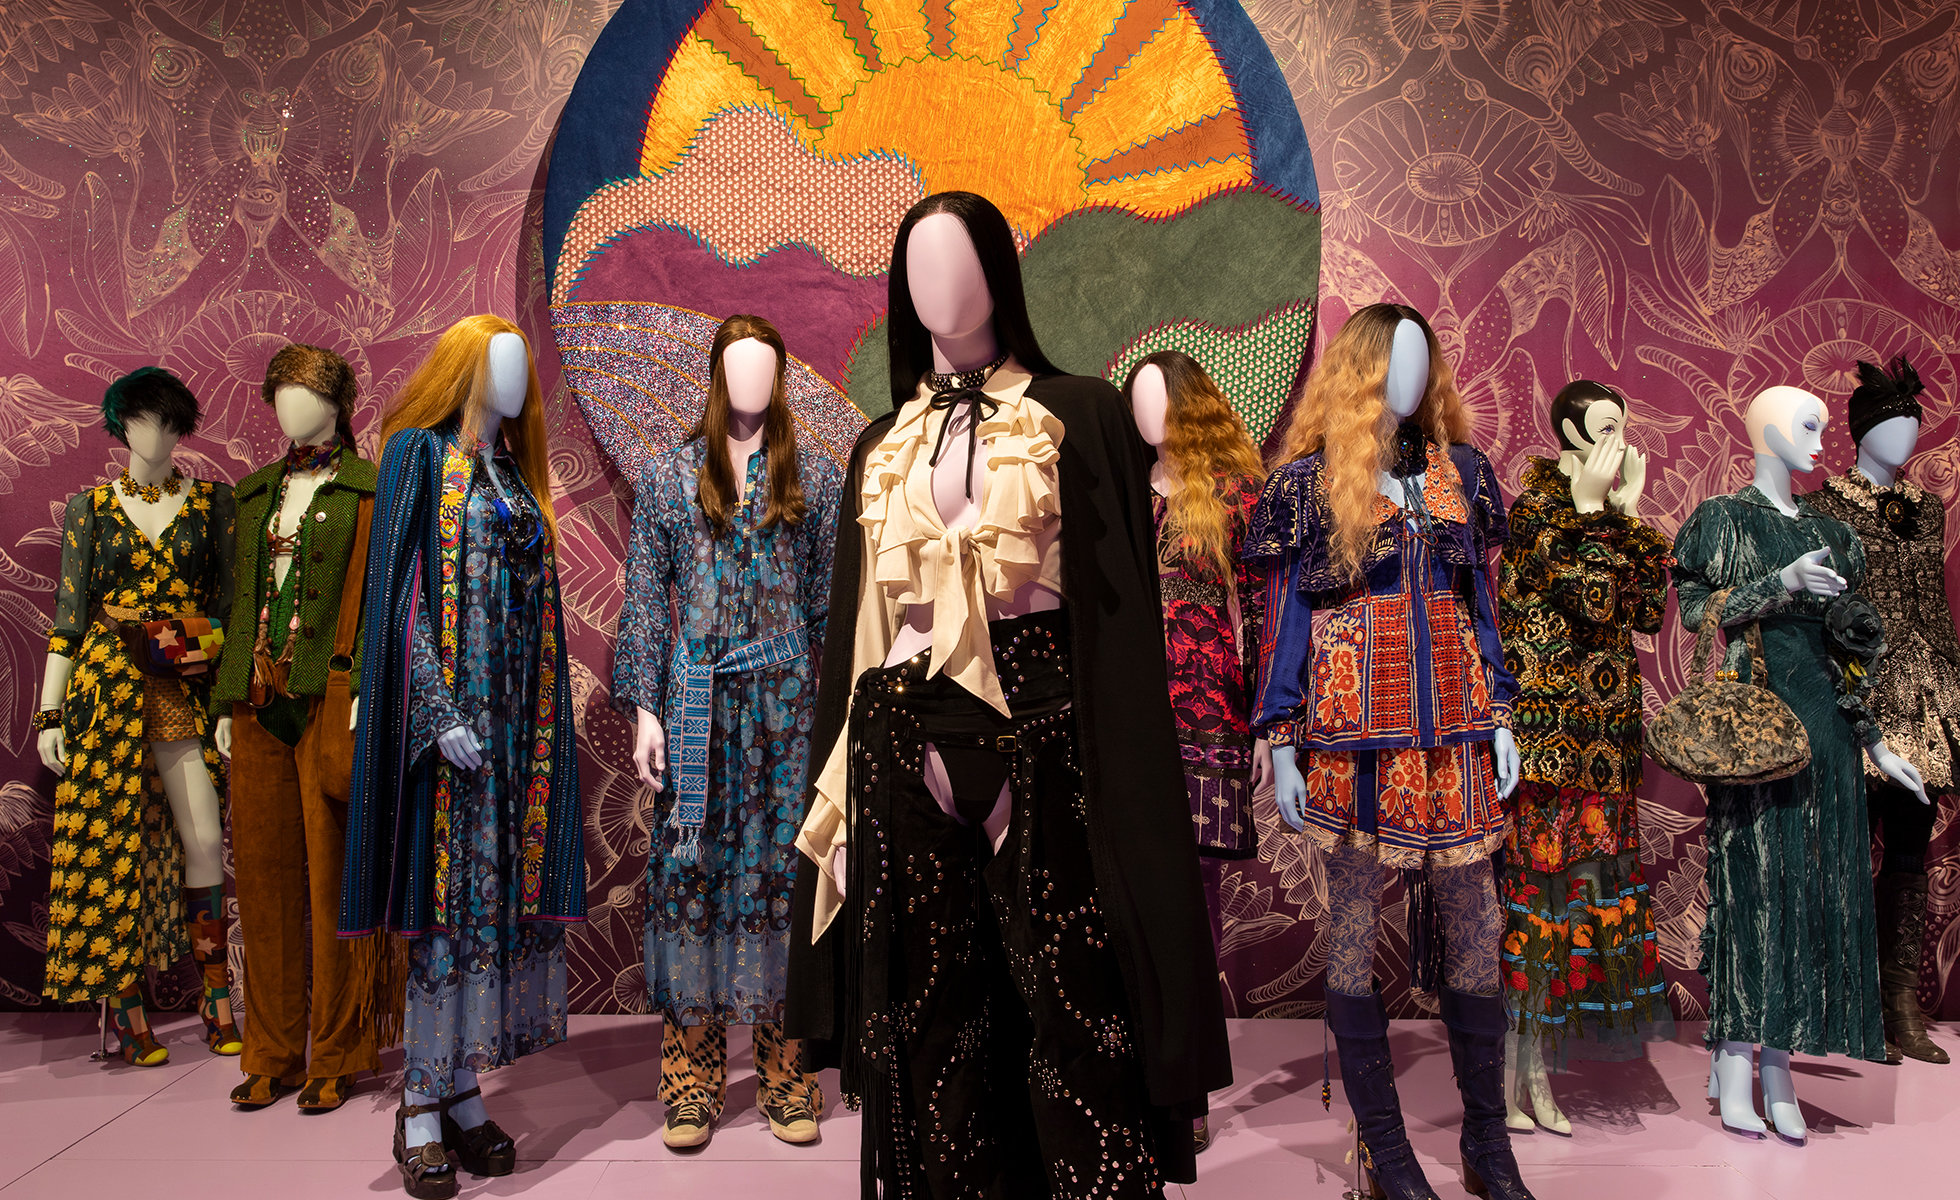 Installation view of The World of Anna Sui at the Museum of Arts and Design, New York | Photo: Jenna Bascom